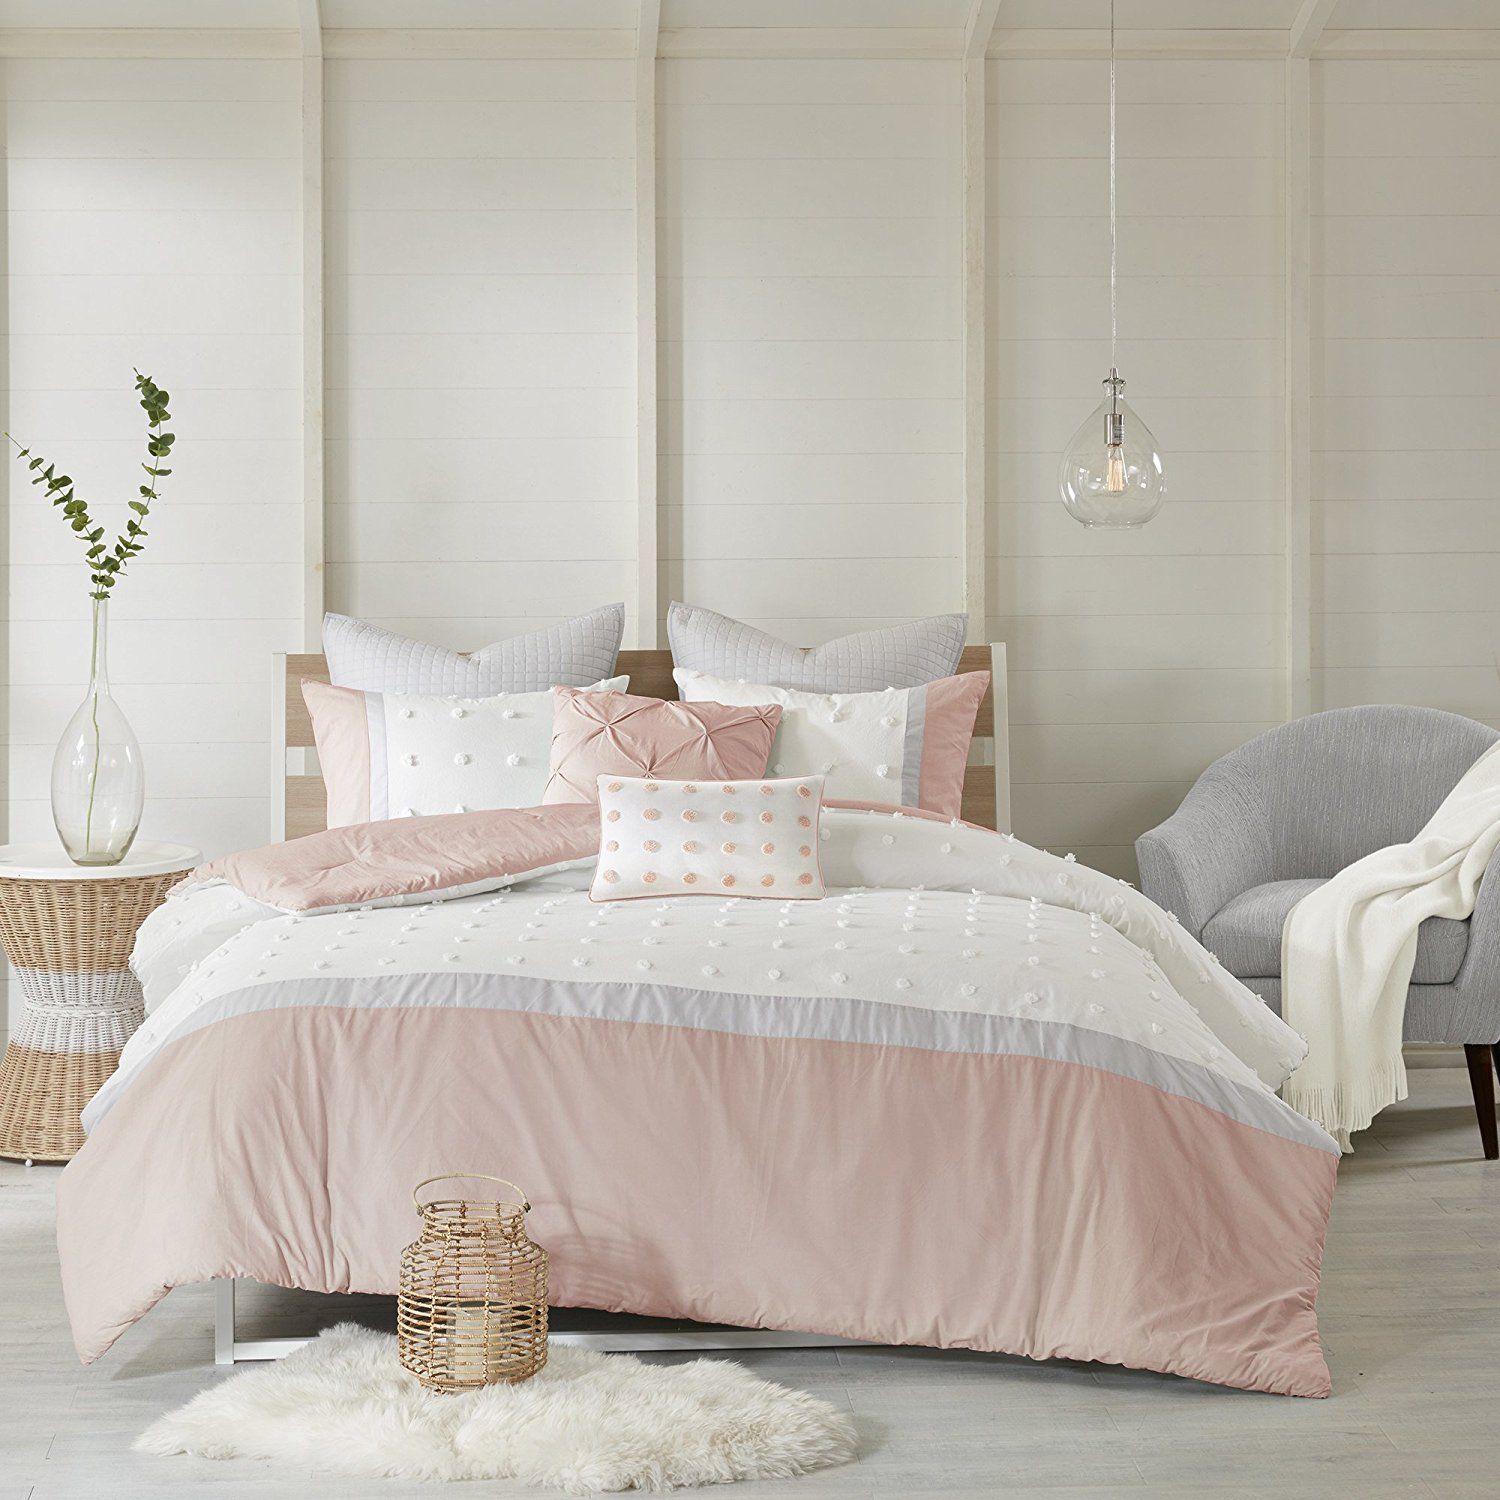 Buy 7 Piece Girls Light Pink Grey White Tufts Dot Stripe Themed Duvet Cover King Cal Set Girly Pretty Polka Dots Stripes Bedding All Over Small Circle Polkadot Dot Texture Striped Pattern